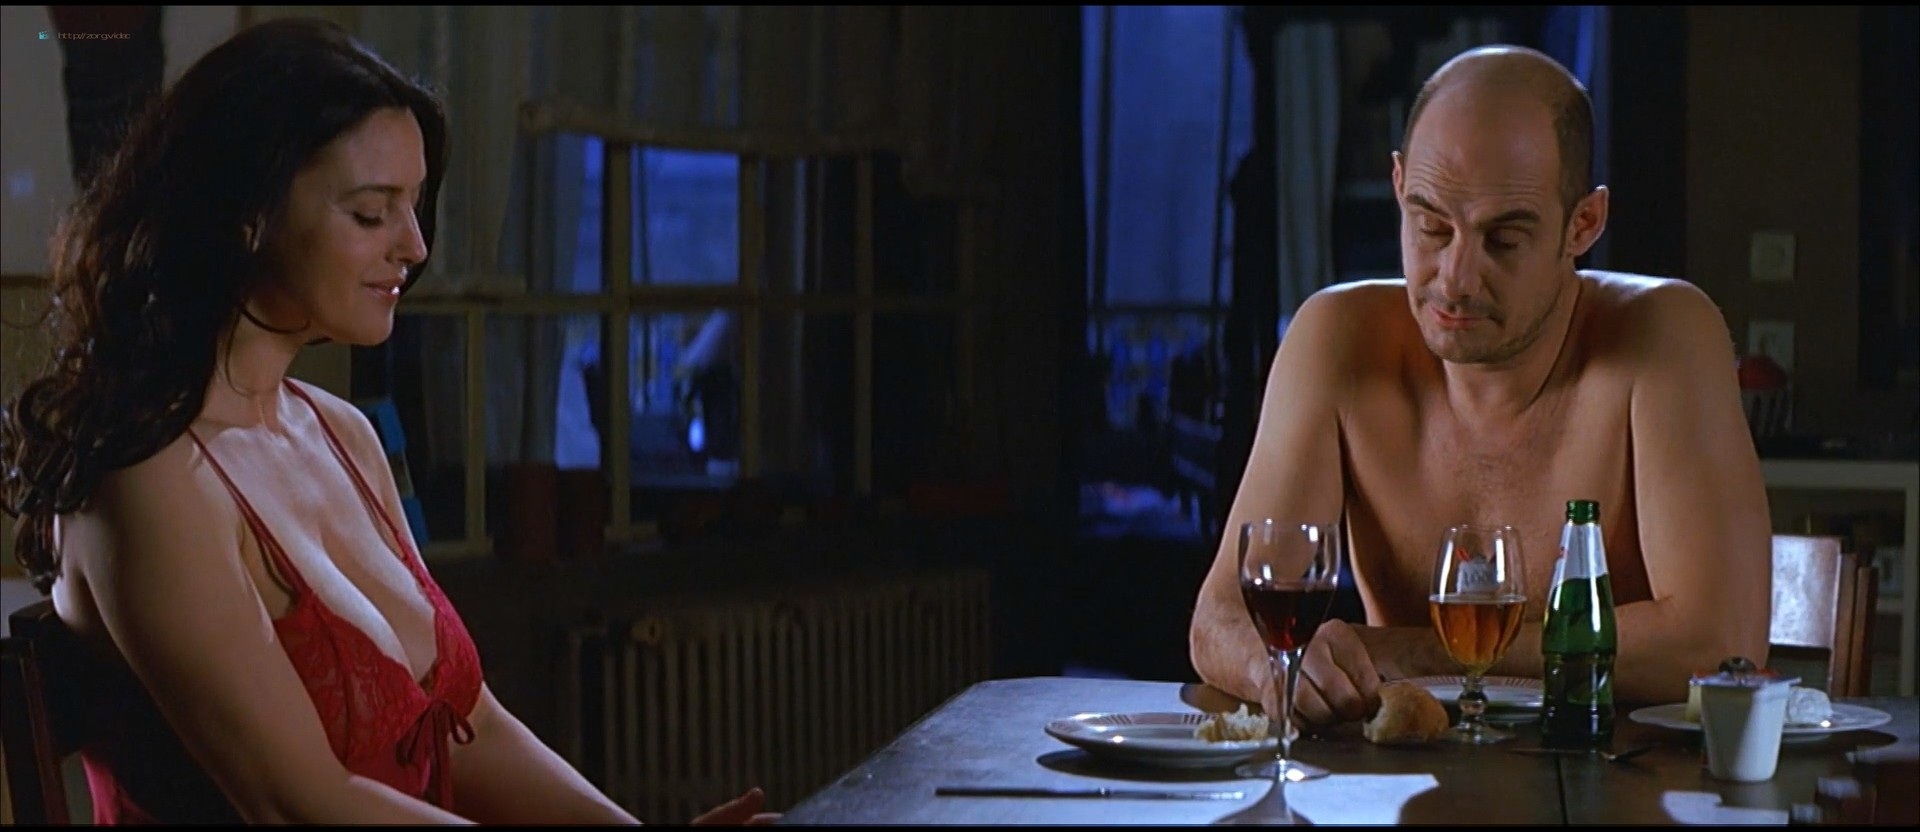 Monica Bellucci nude and sex - Combien tu m'aimes (2005) HD 1080p WEB (9)